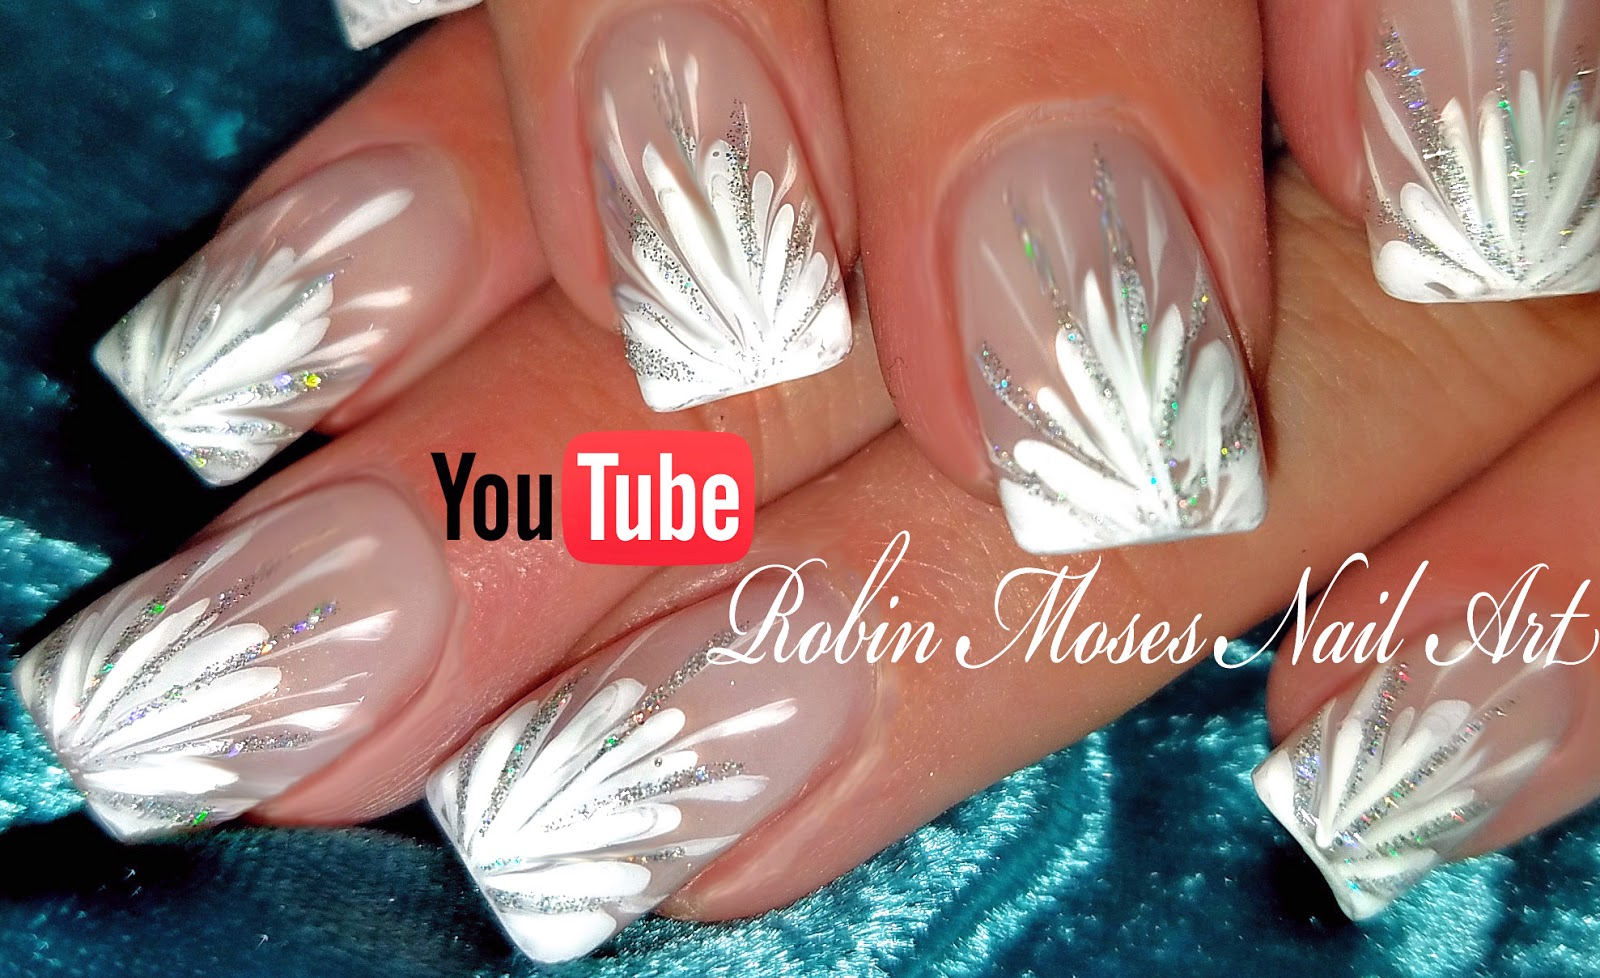 Nail Art By Robin Moses No Water Needed Diy White Starburst Drag